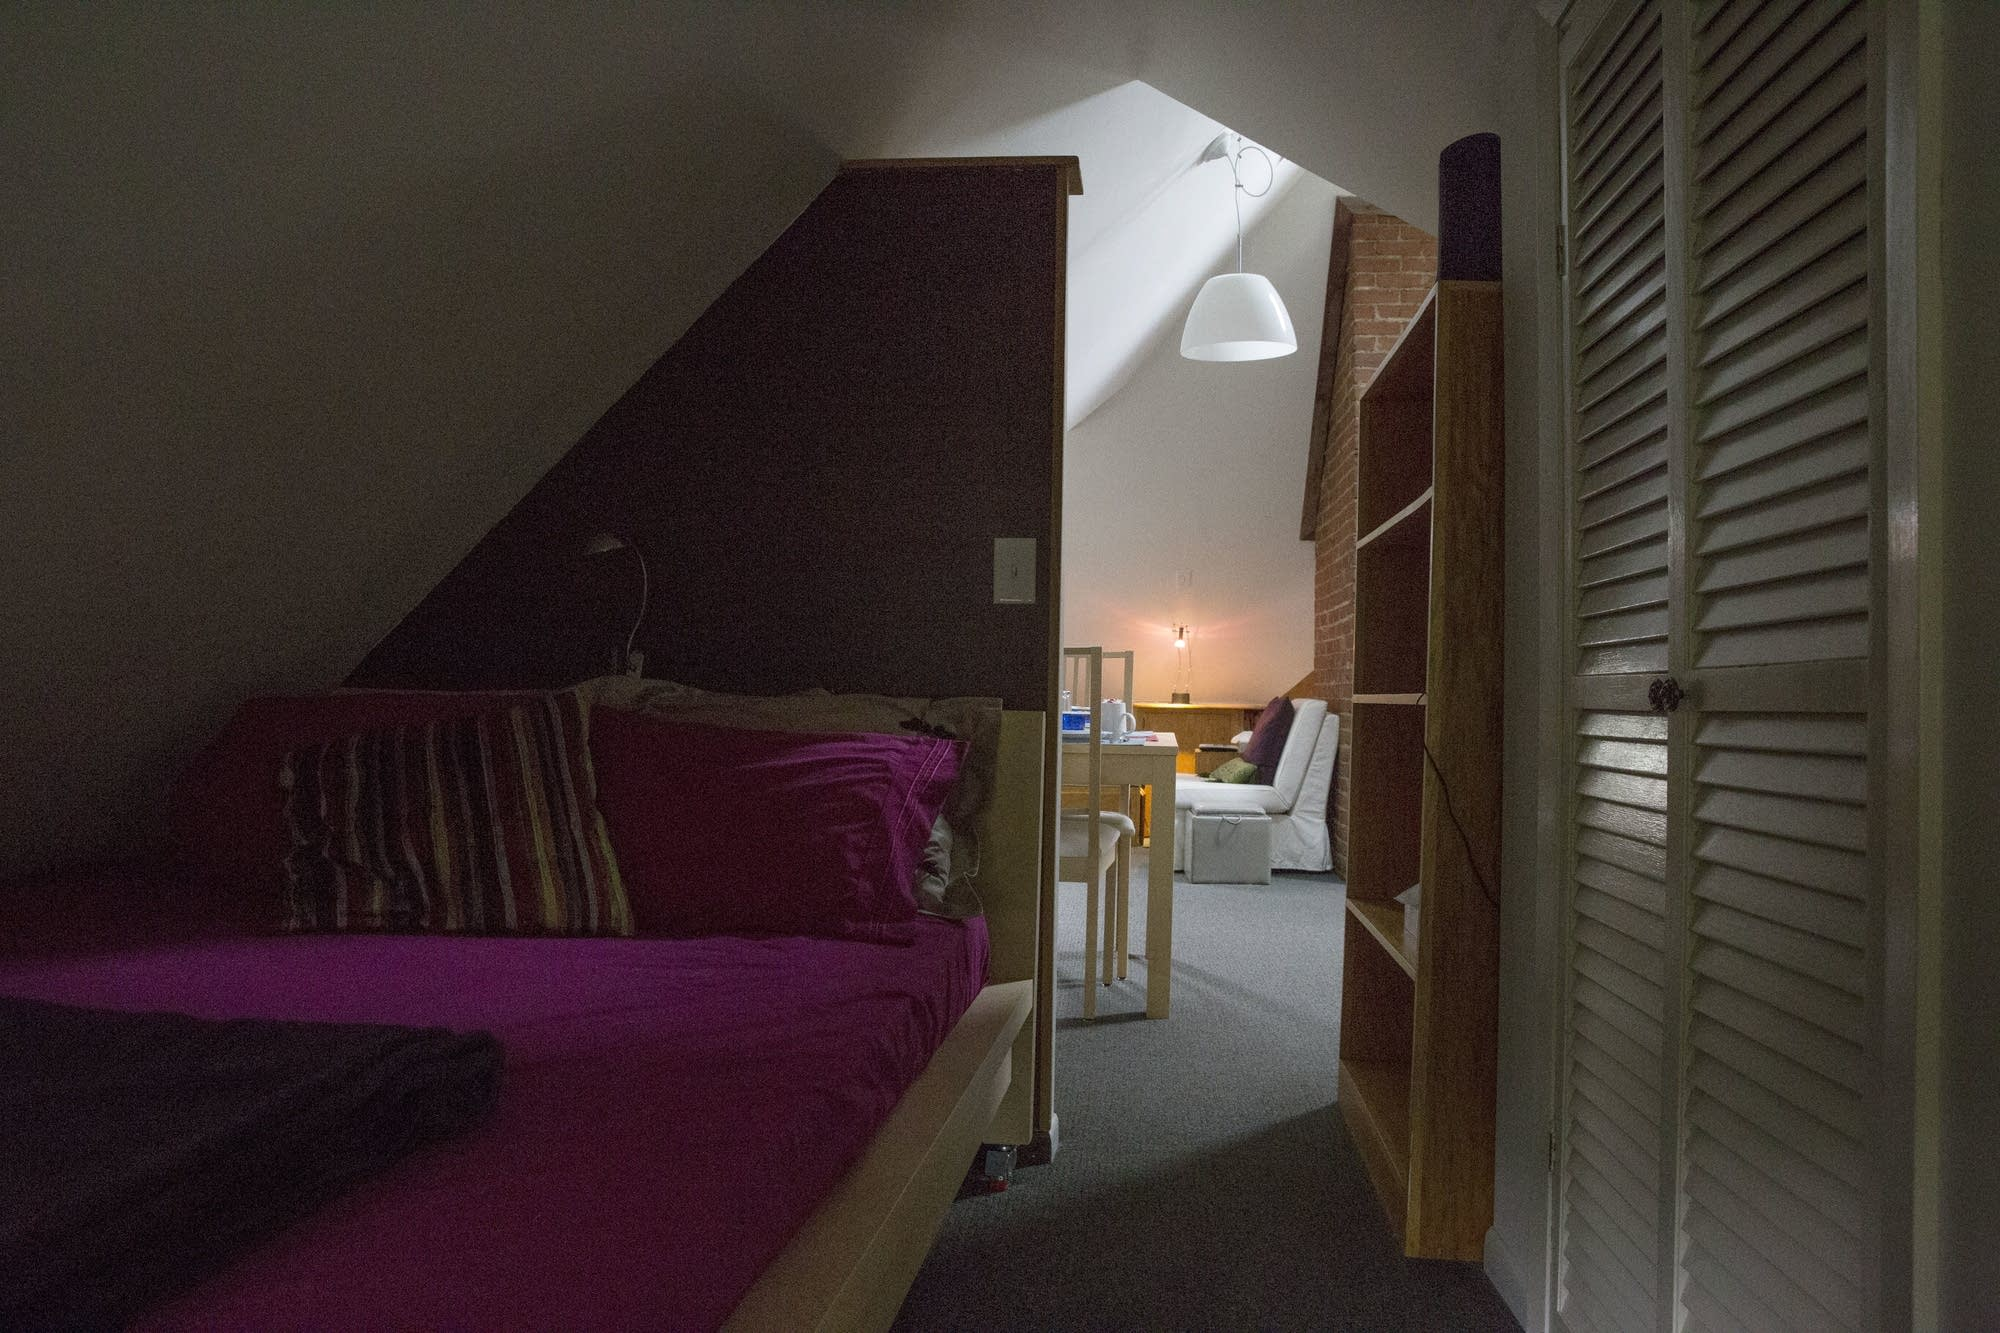 Merveilleux The Bedroom Section Of Tess Galatiu0027s Airbnb Rental Is Tucked ...